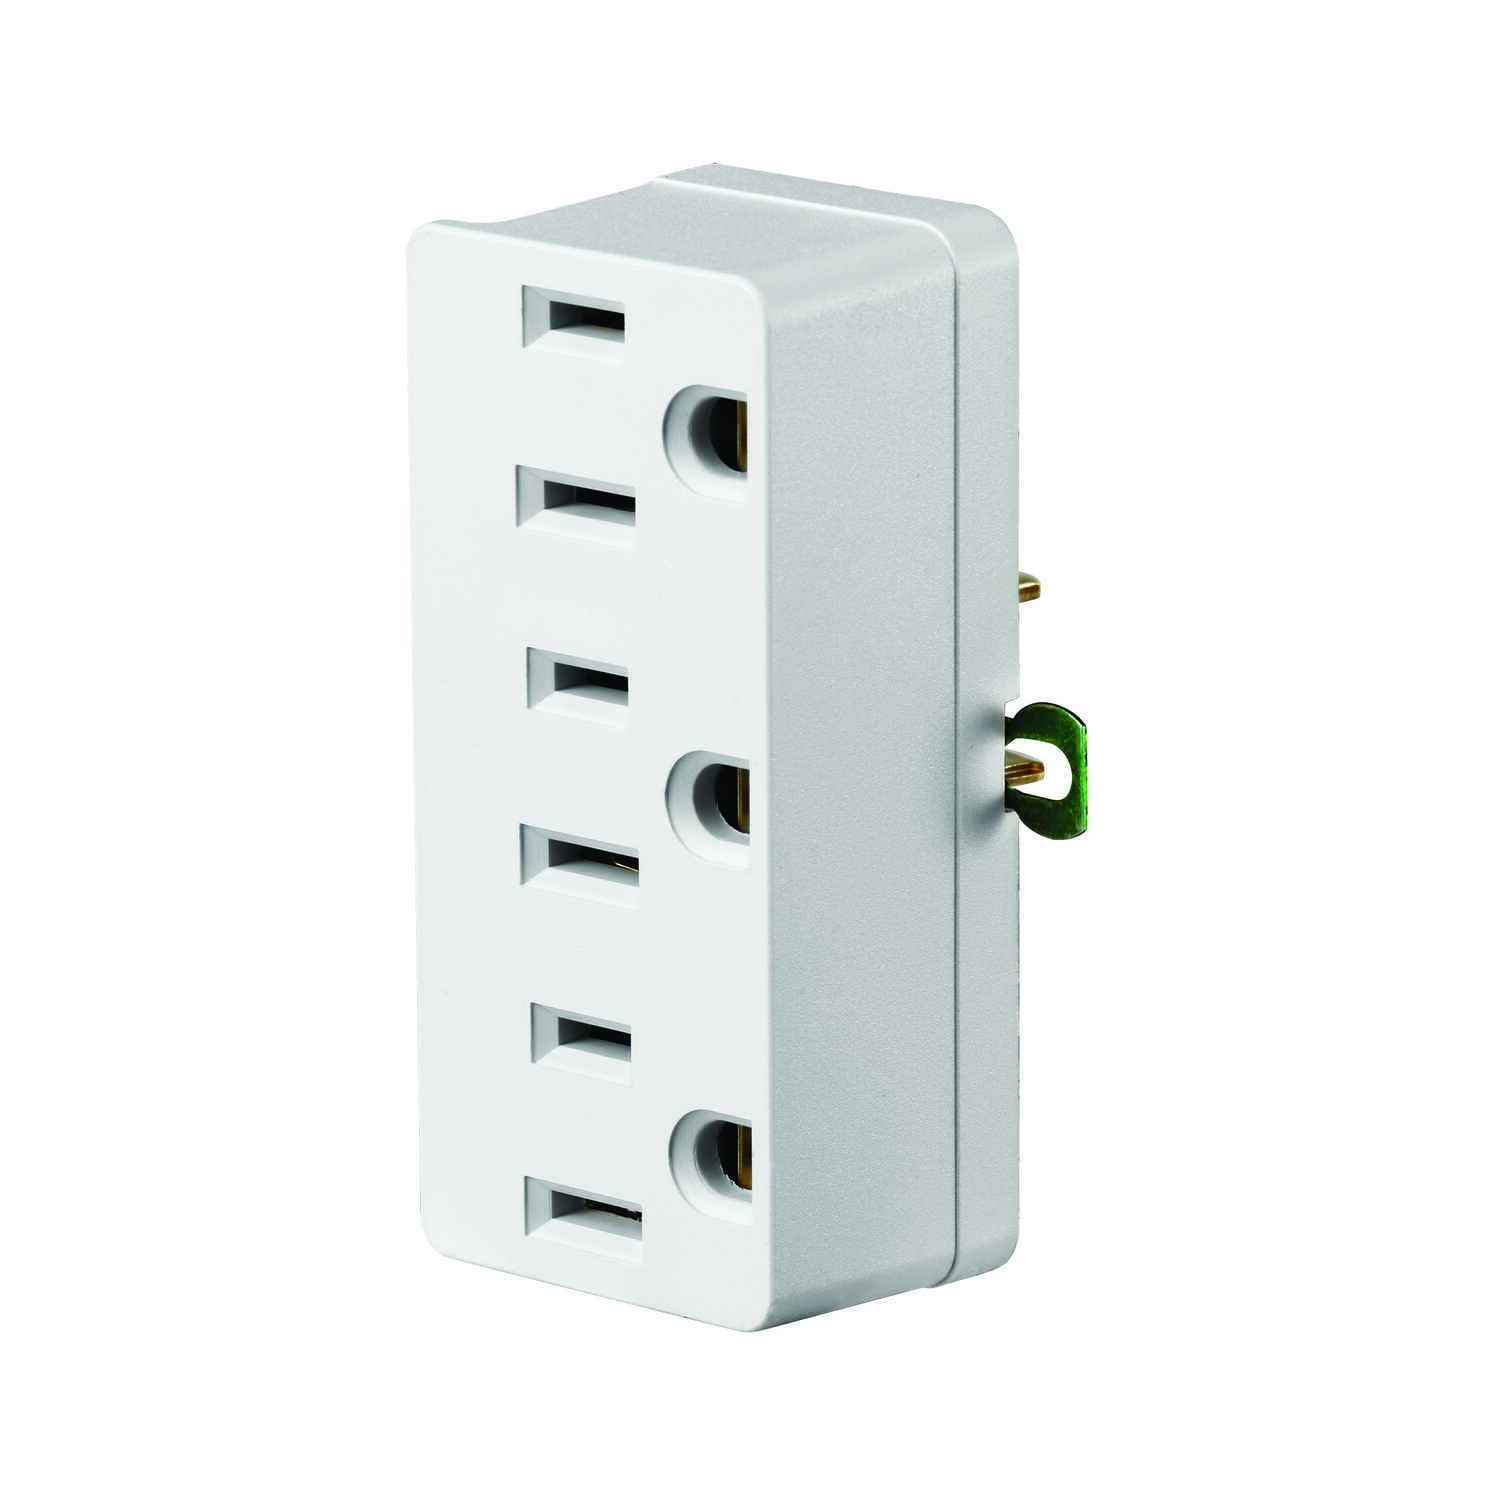 Leviton  Grounded  3 outlets Adapter  1 pk